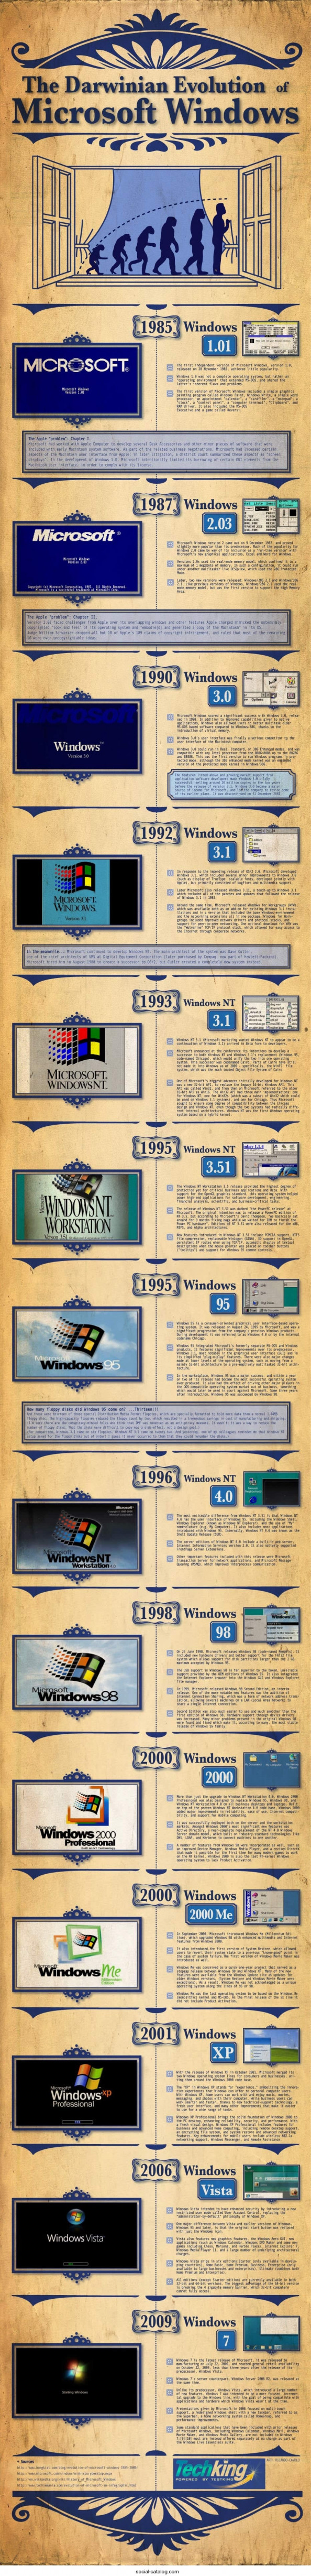 The Darwinian Evolution of Microsoft Windows Infographic